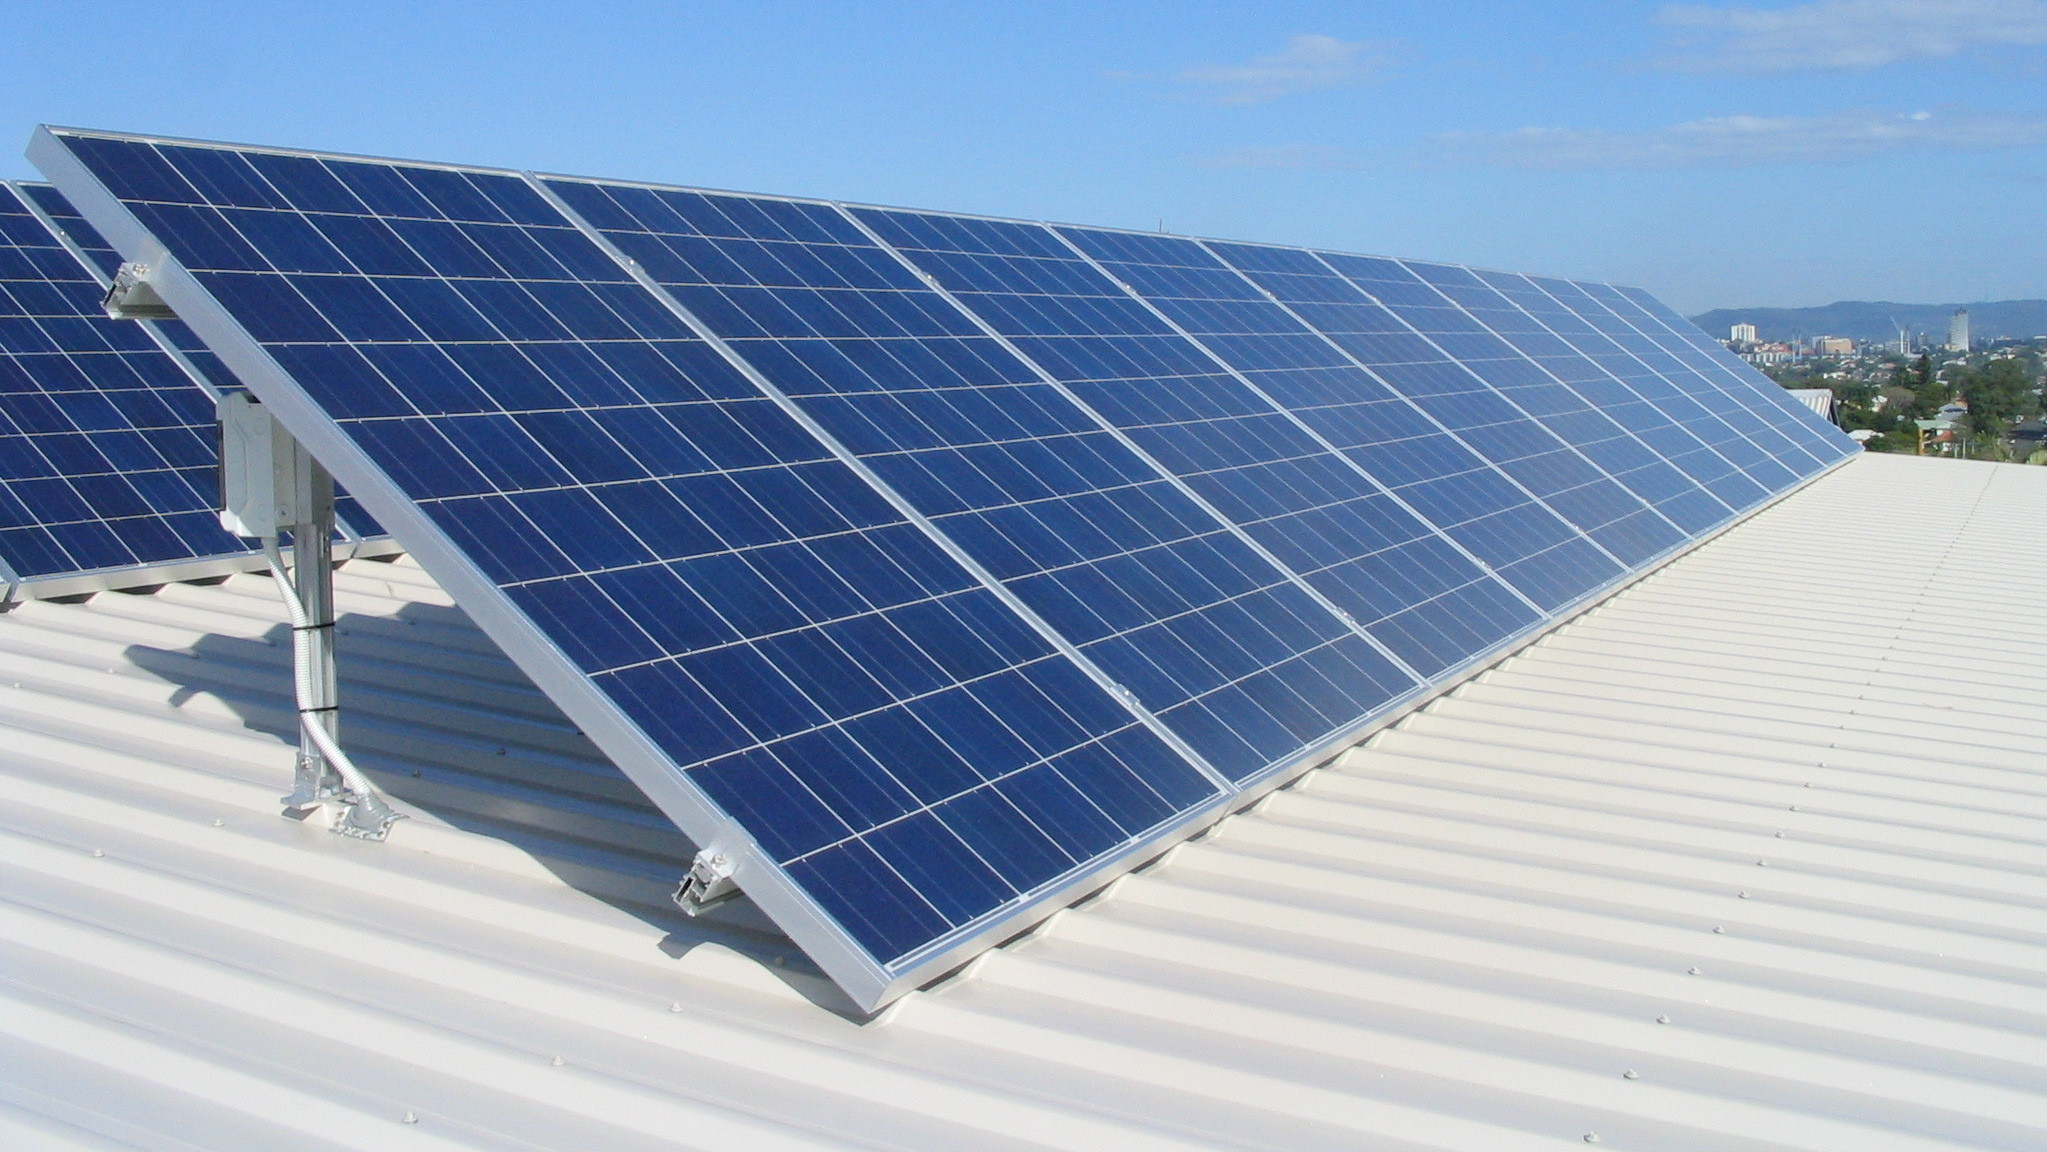 Solarpanil: 6 Reasons Why You Should Not Install Solar Panels For Your